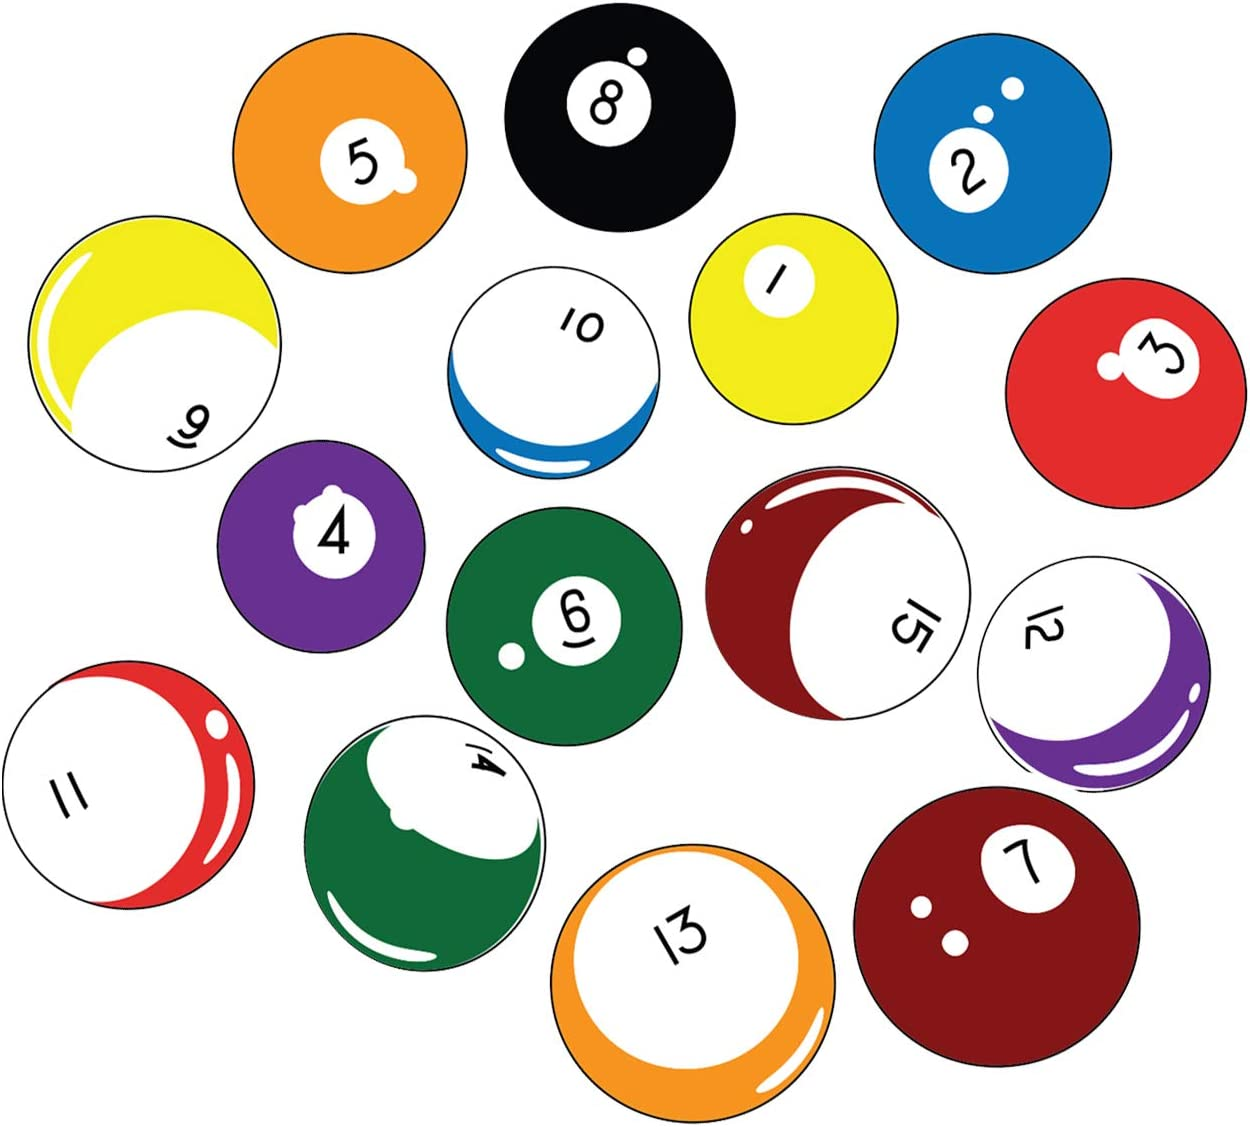 Stickerbrand 15 Billiard Balls Wall Decal Stickers Printed Graphic Game Room Decor Vinyl Wall Art (Range from 8in x 8in to 11in x 11in in Size) #OS_MB130A. Easy to Apply & Removable.